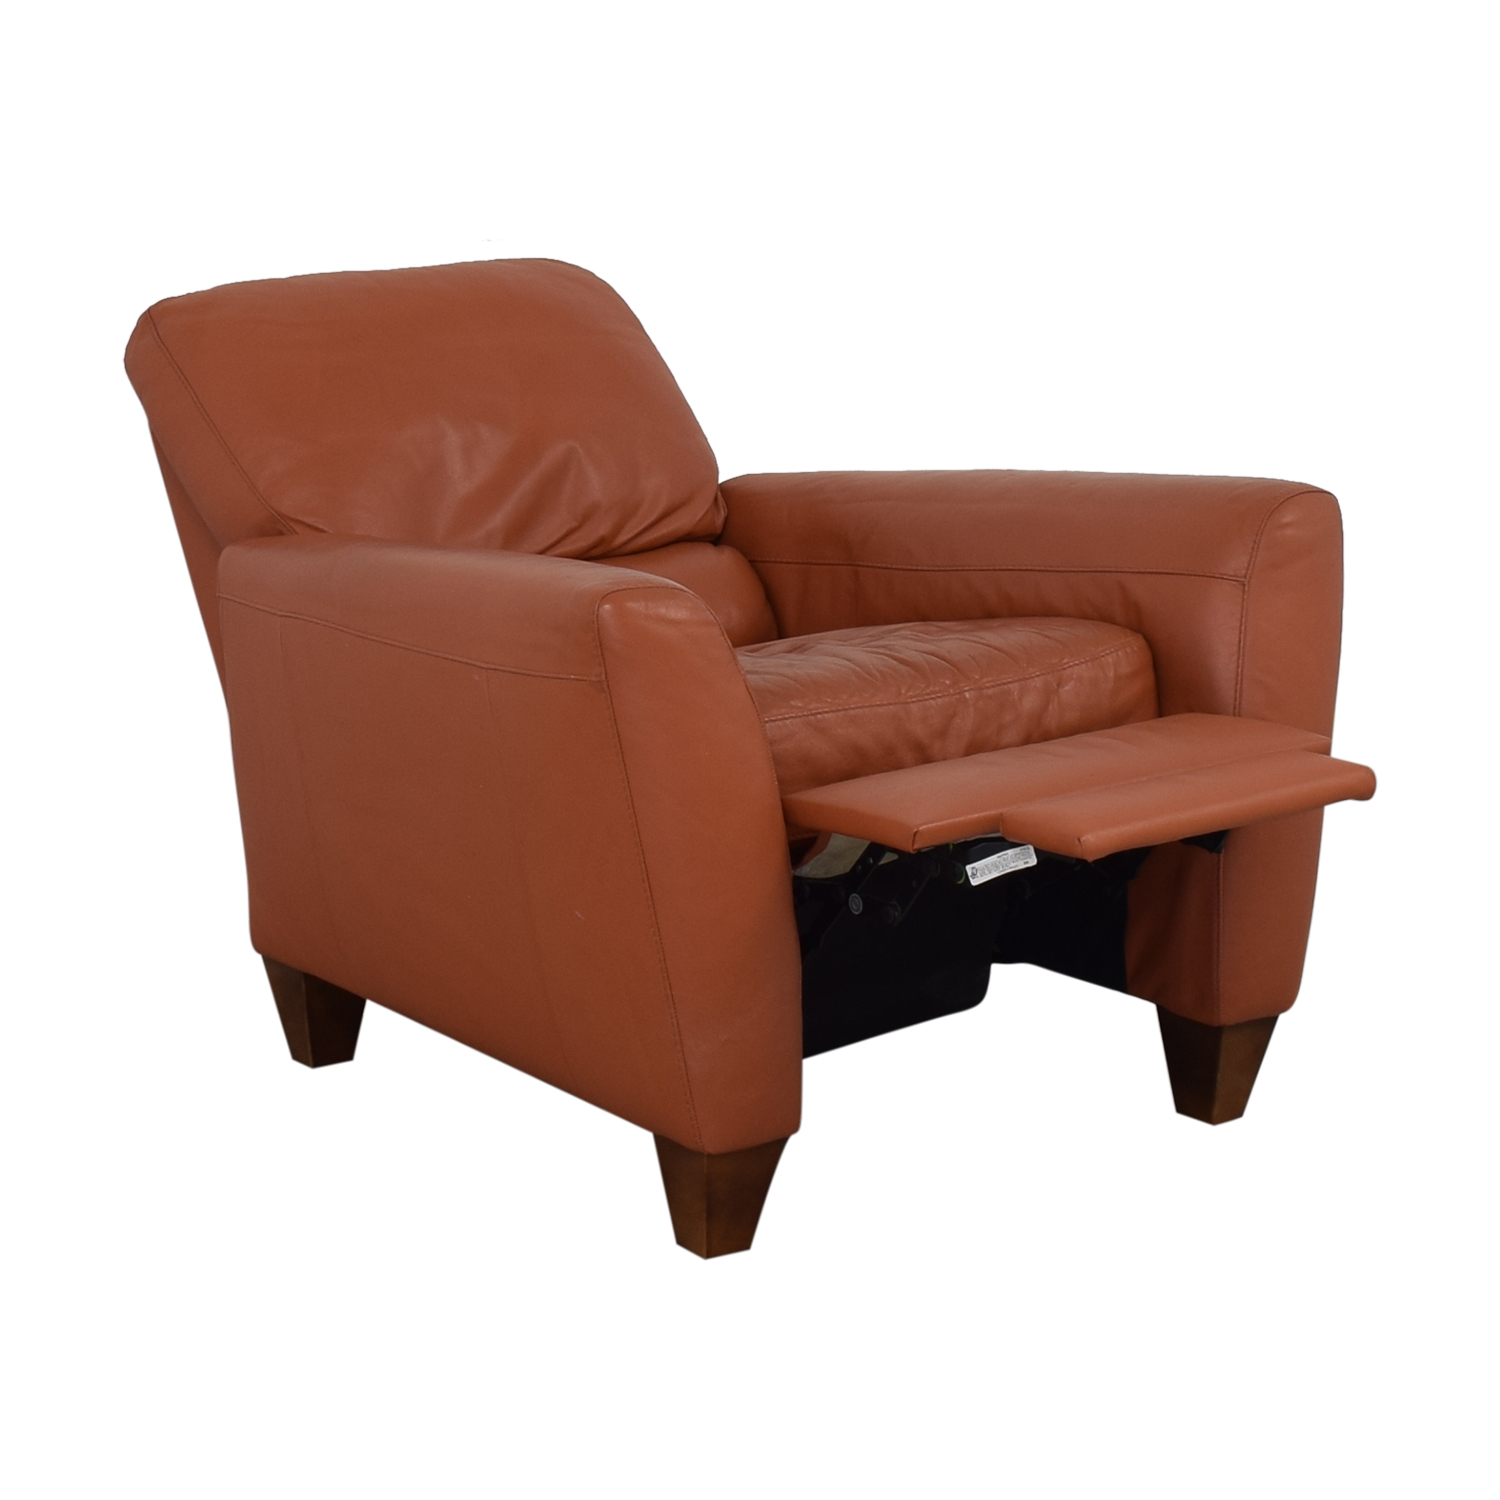 buy Macy's Cognac Recliner Macy's Chairs